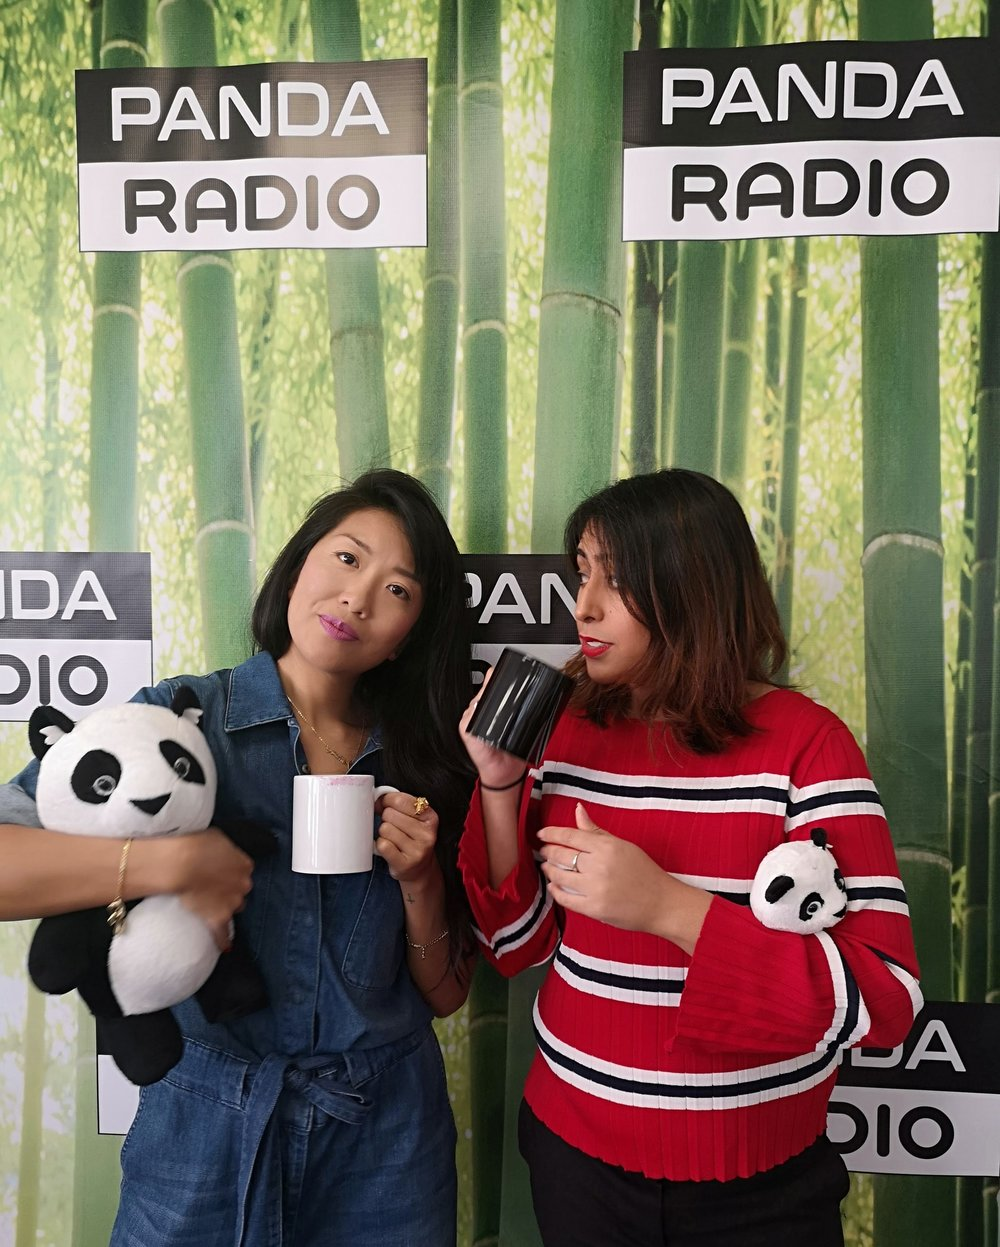 Panda Radio - Panda Radio Interview by award winning Host Kavita Kavita for International Coffee Day where I was speaking about coldbrew and my Bailey's Irish Cream & Coffee cocktail signature serve.